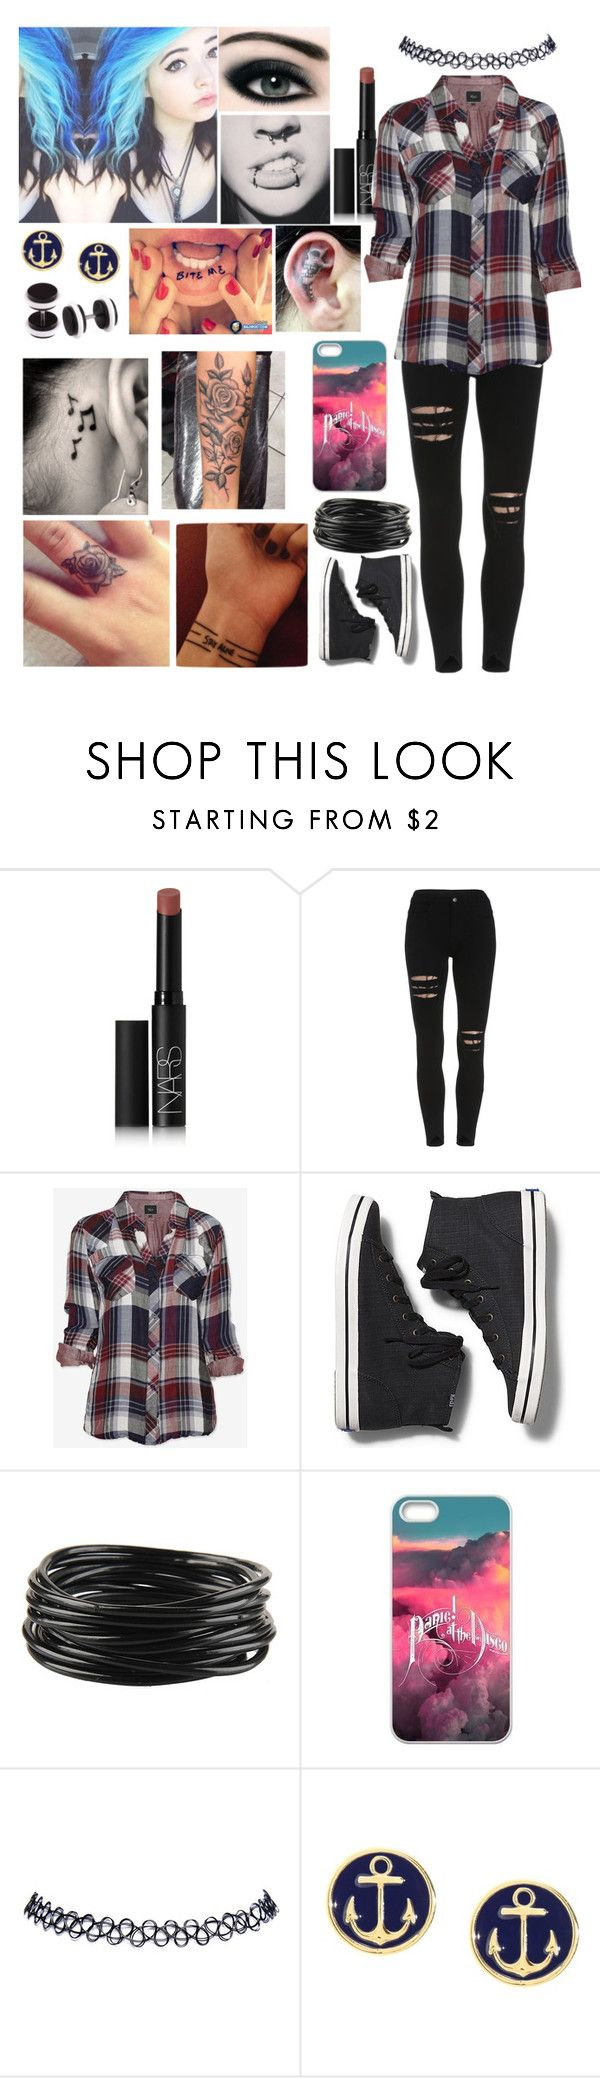 """""""We don't play by the rules"""" by emmcg915 ❤ liked on Polyvore featuring NARS Cosmetics, Rails, Keds, Forever 21, Wet Seal and Brooks Brothers"""